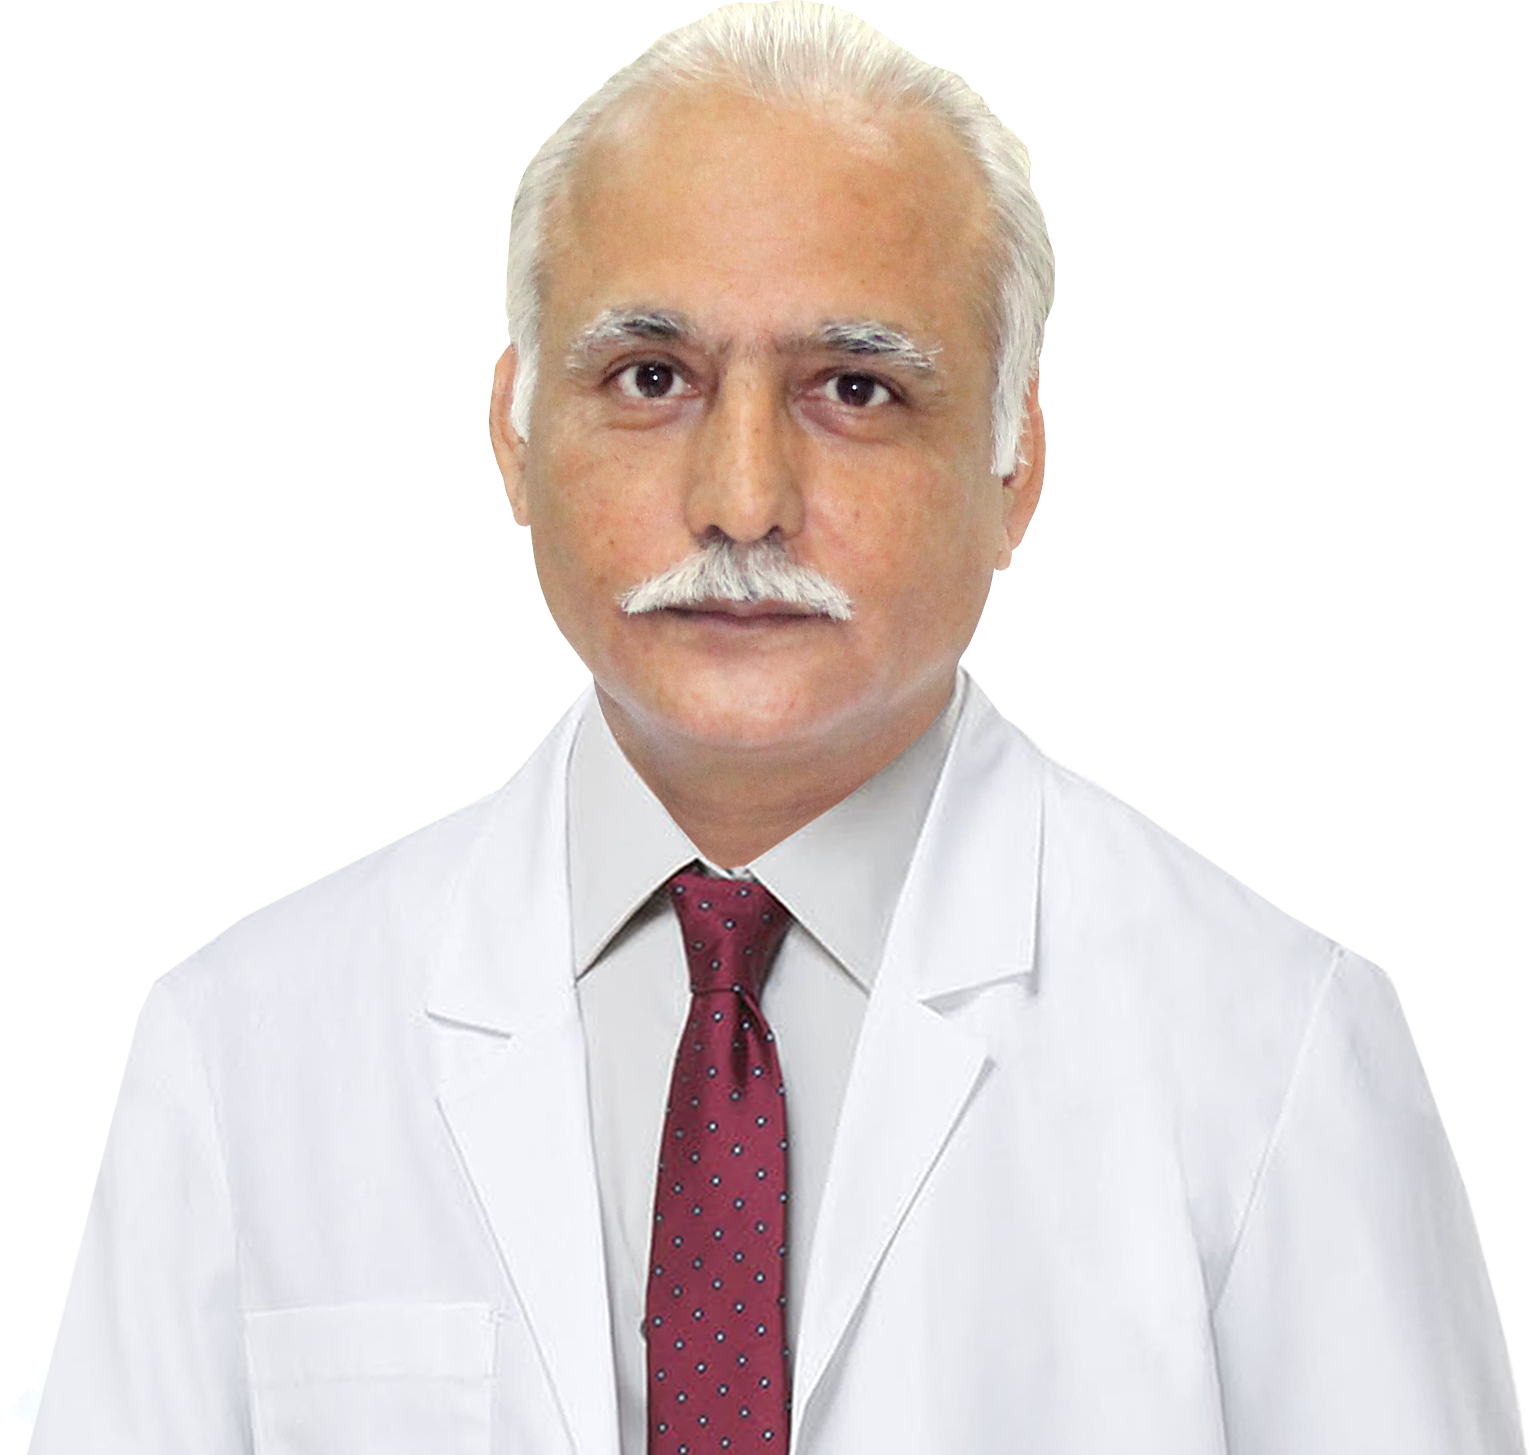 Dr Gianchand